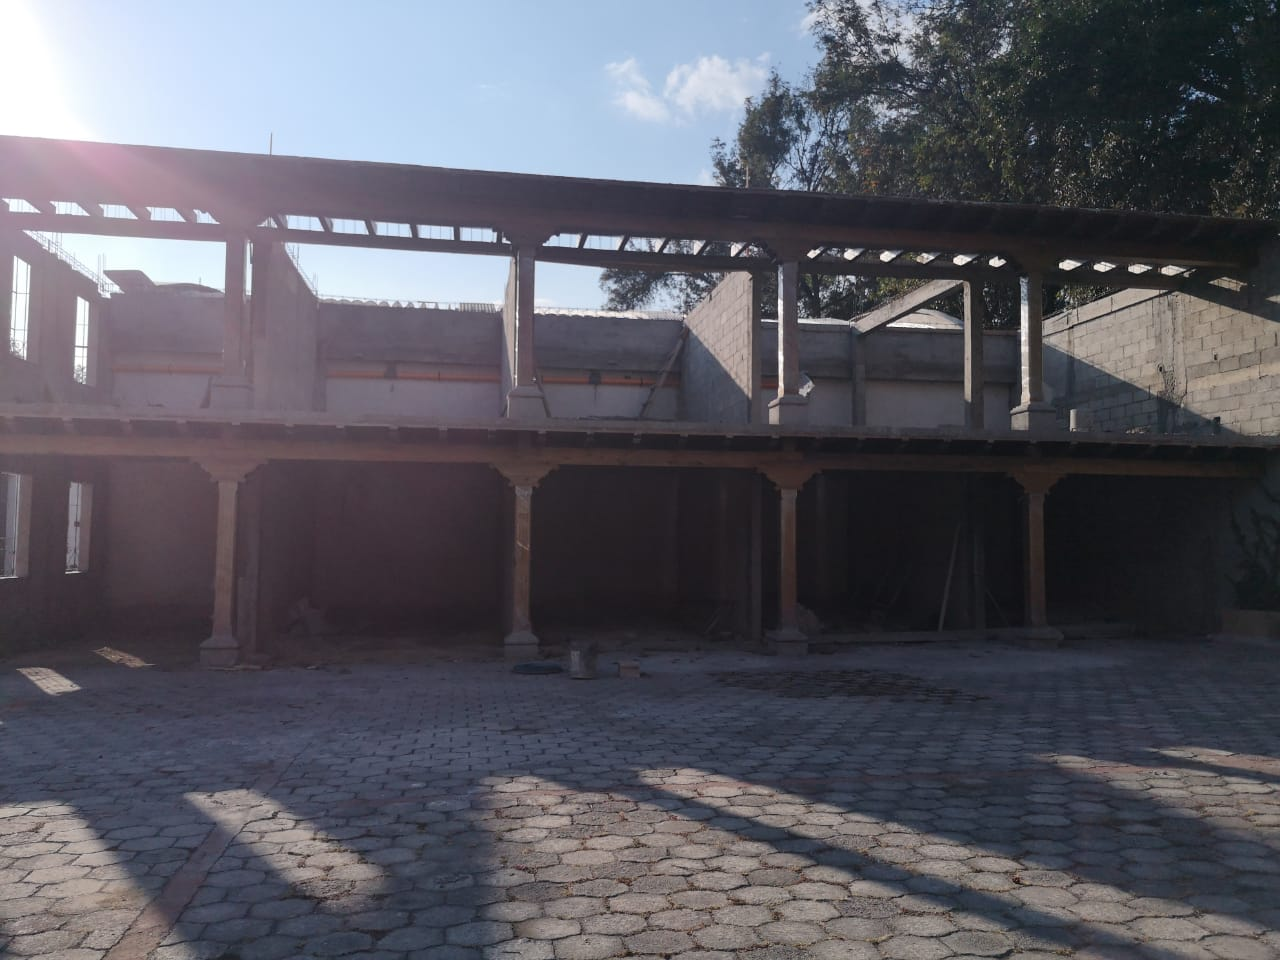 4660 WAREHOUSE FOR RENT CLOSE TO CENTRAL ANTIGUA (From: 9m2. Under construction)